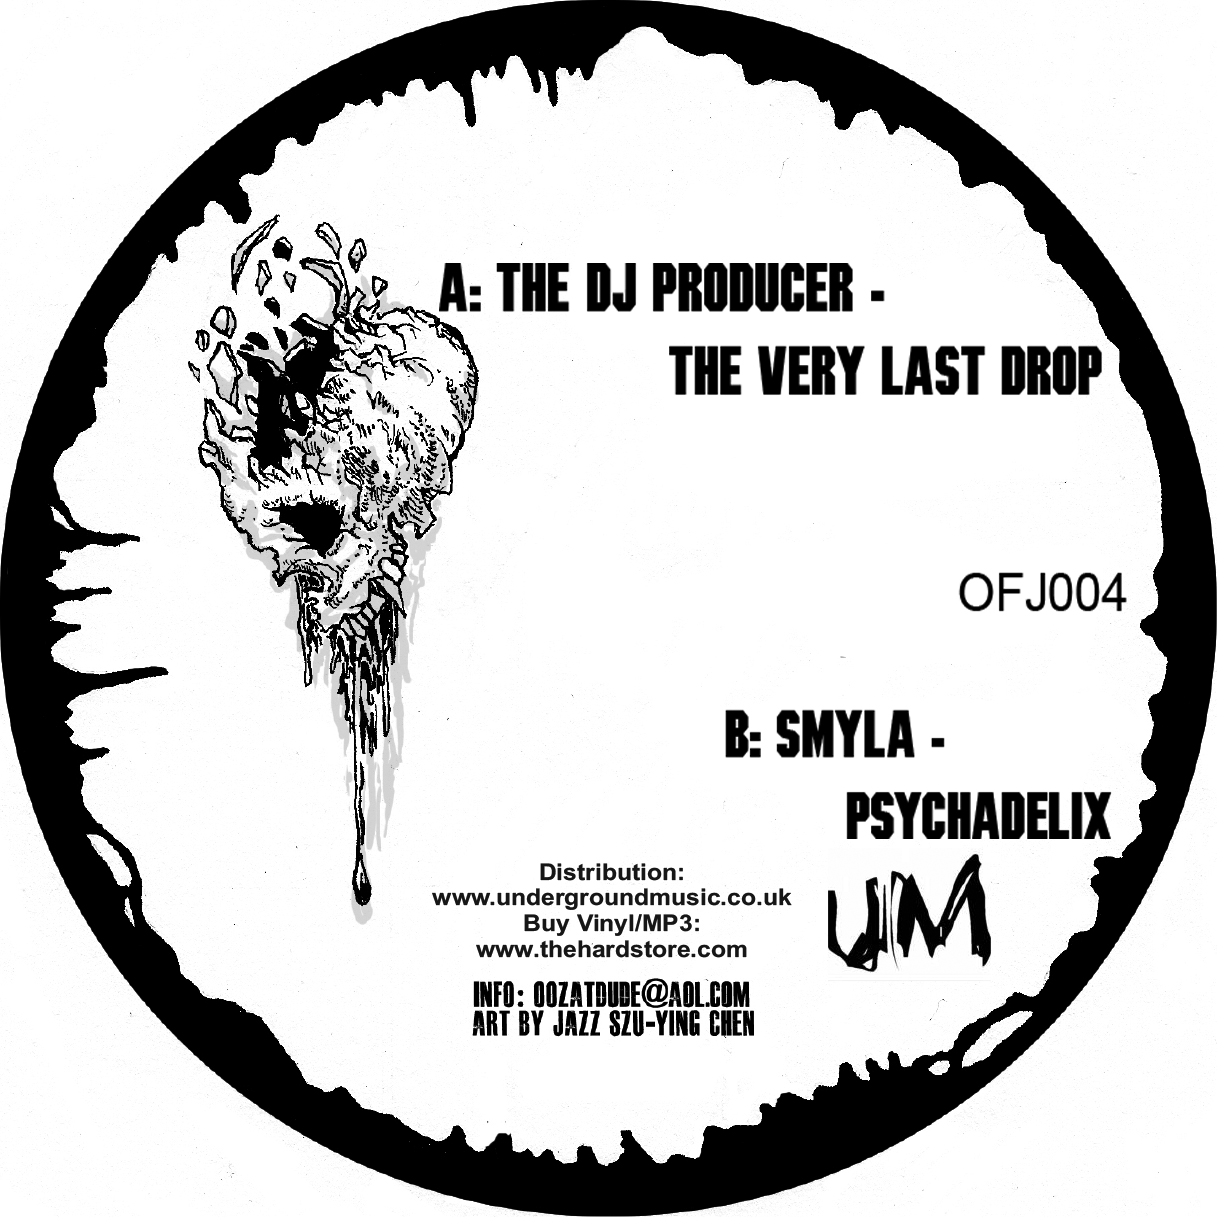 DJ Producer/THE VERY LAST DROP 12""